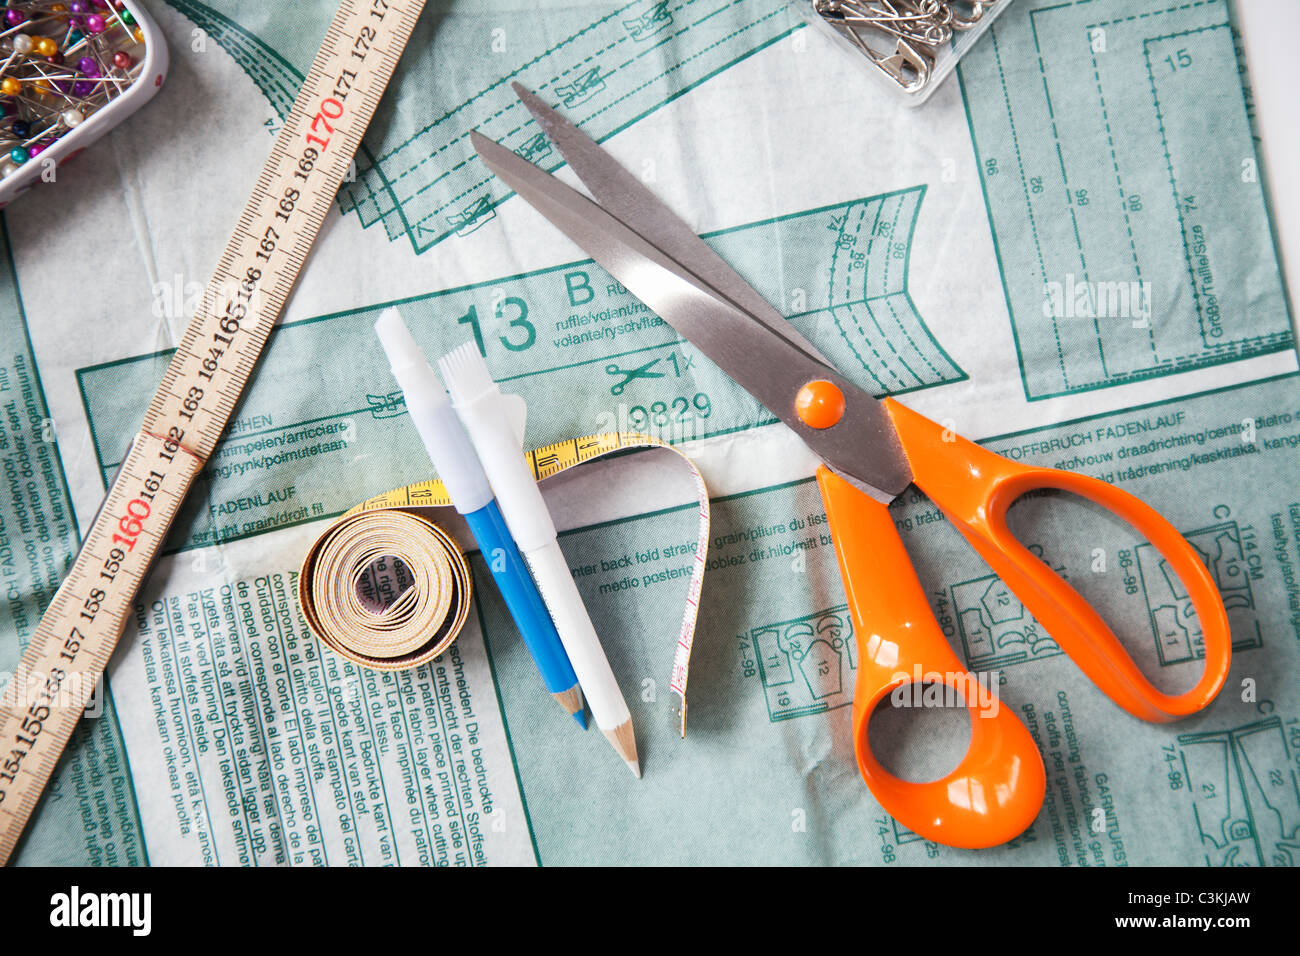 Sewing patter, scissors and tape measure, still life - Stock Image